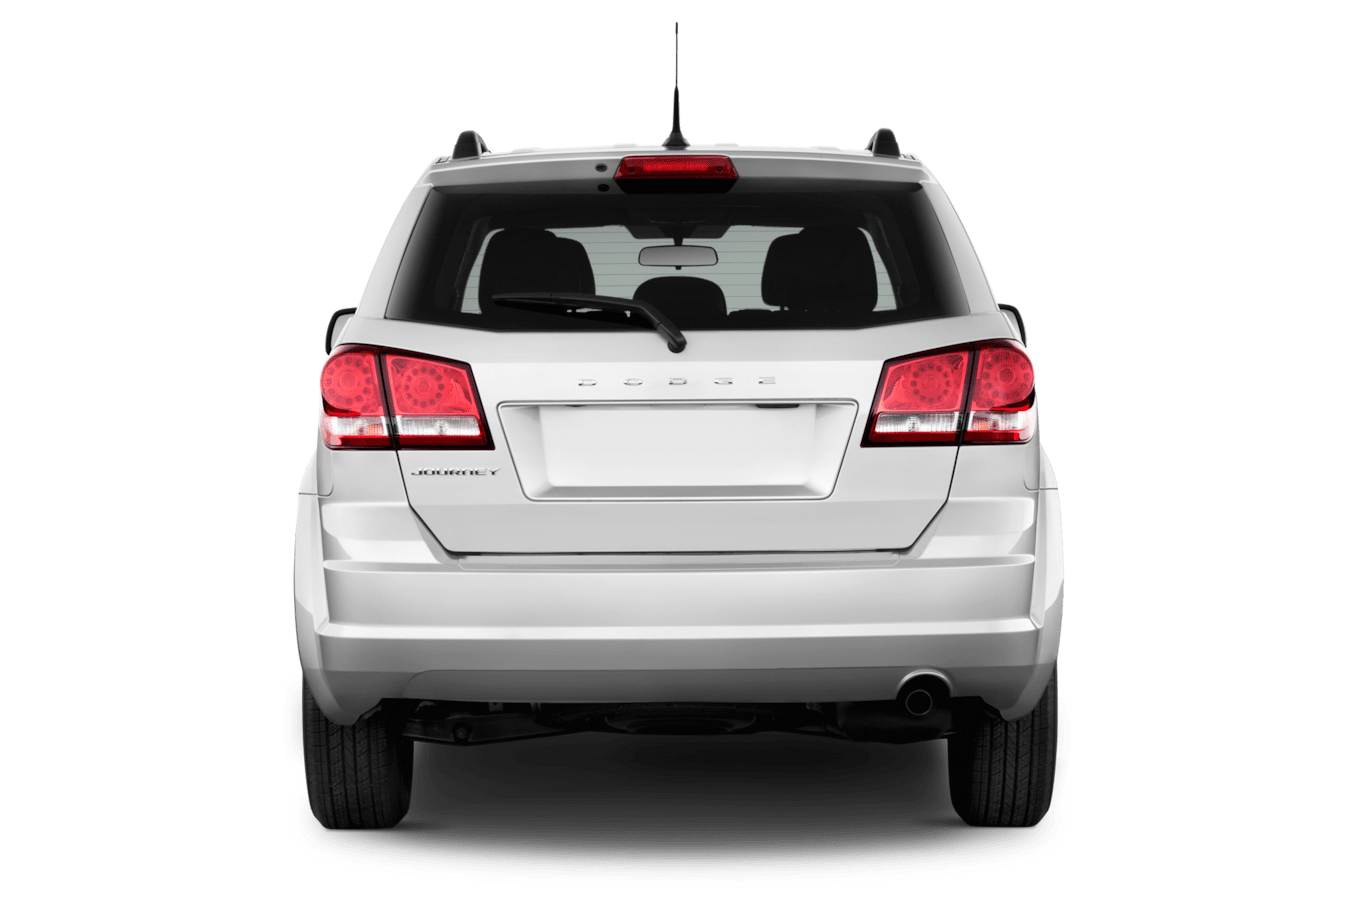 2014 Acadia Wiring Diagram 2014 Dodge Journey Reviews Research Journey Prices